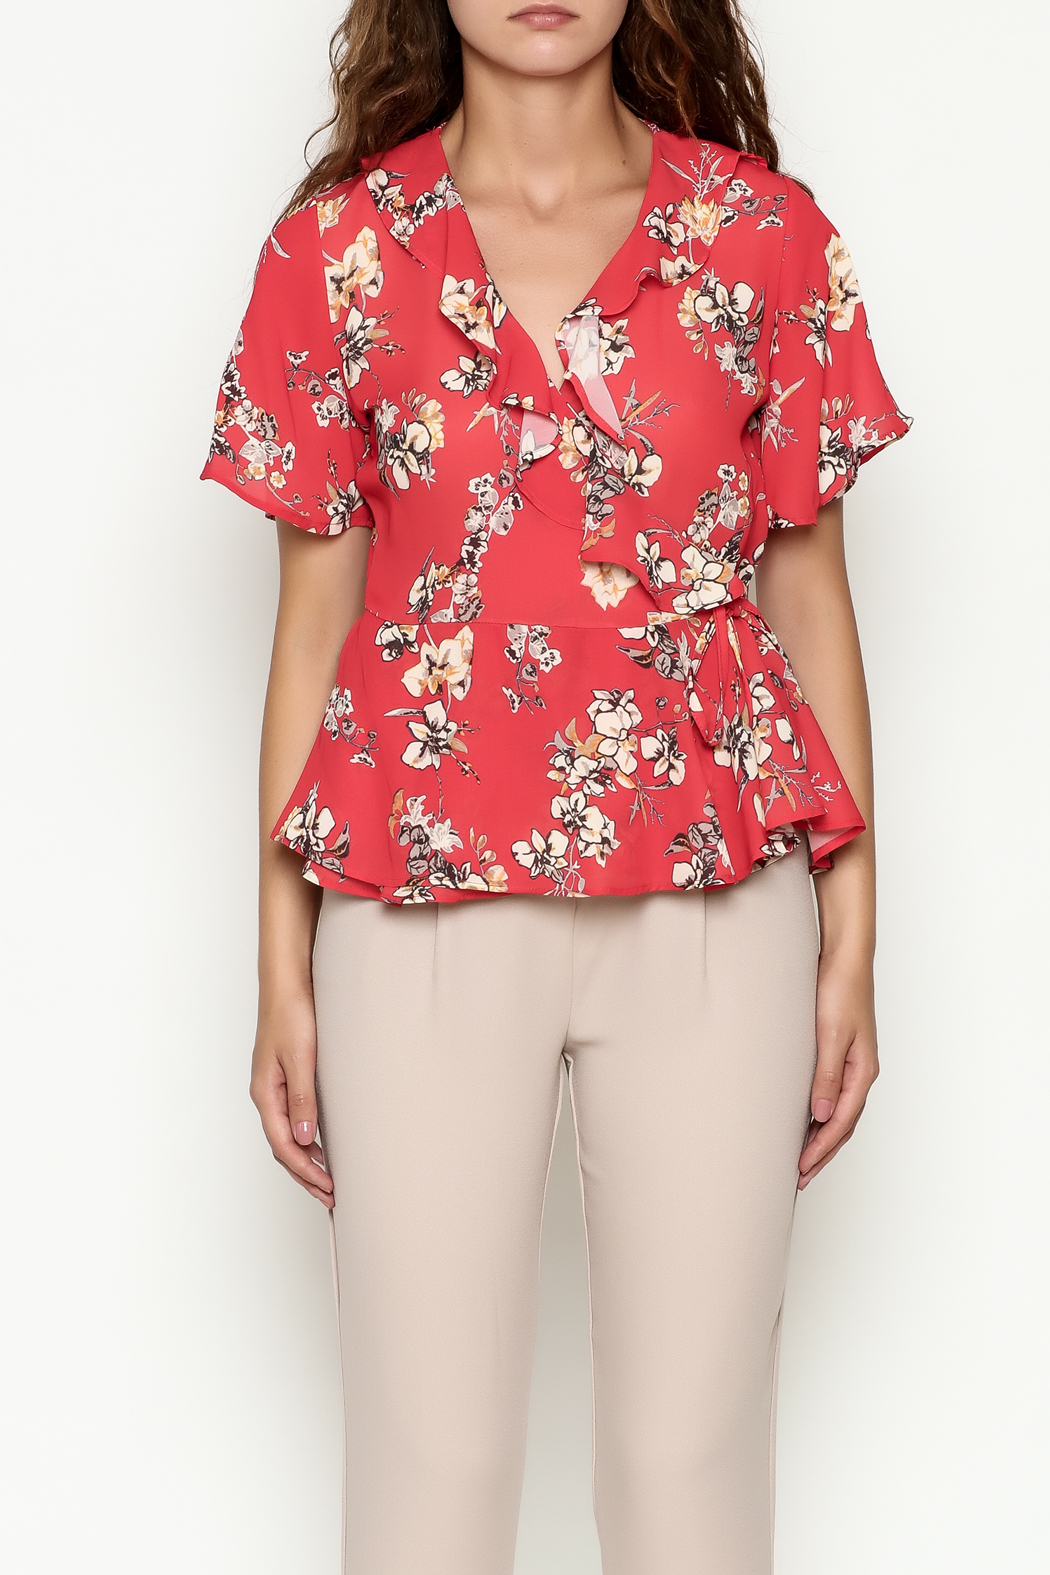 Marvy Fashion Floral Surplice Top - Front Full Image